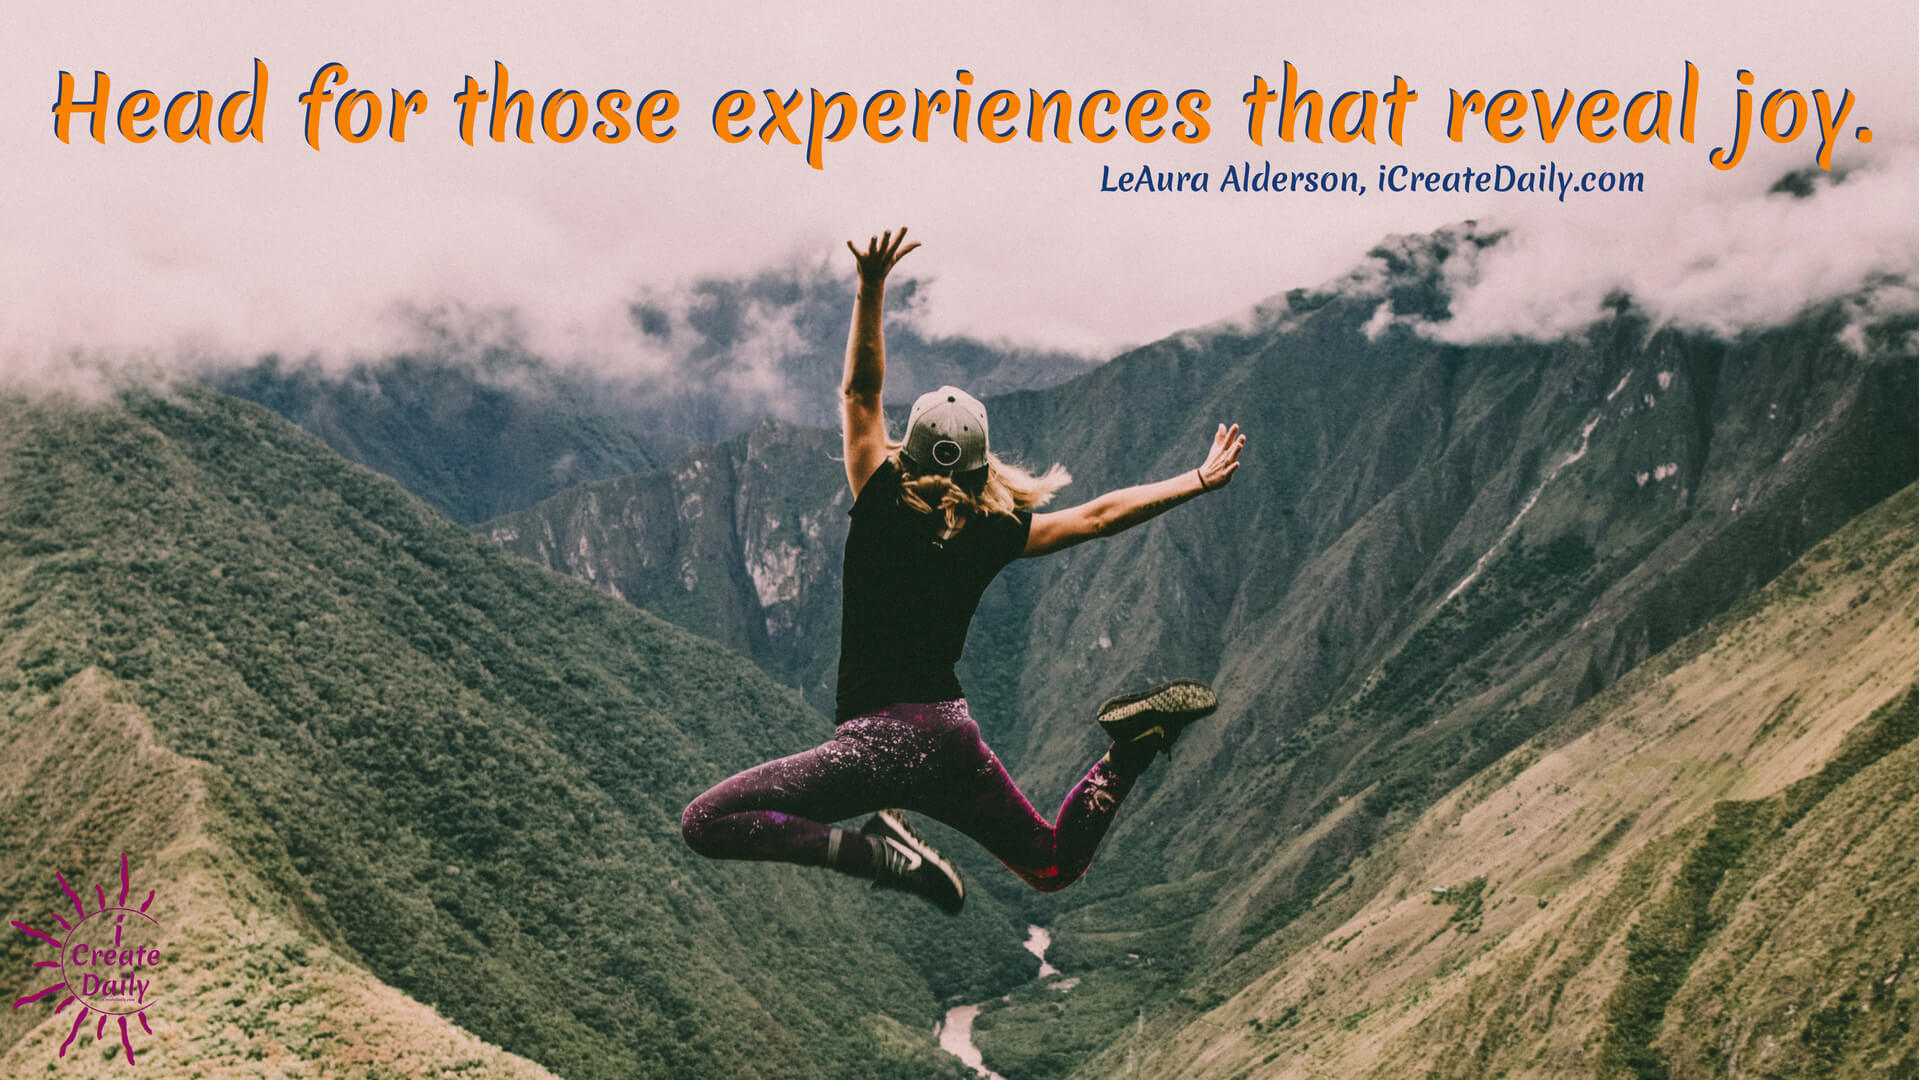 Keep asking questions and exploring. Meanwhile, here are a couple other articles to help you along the way. Enjoy the journey!  Head for those experiences that reveal joy. ~LeAura Alderson, iCreateDaily.com  #quotes #goals #life